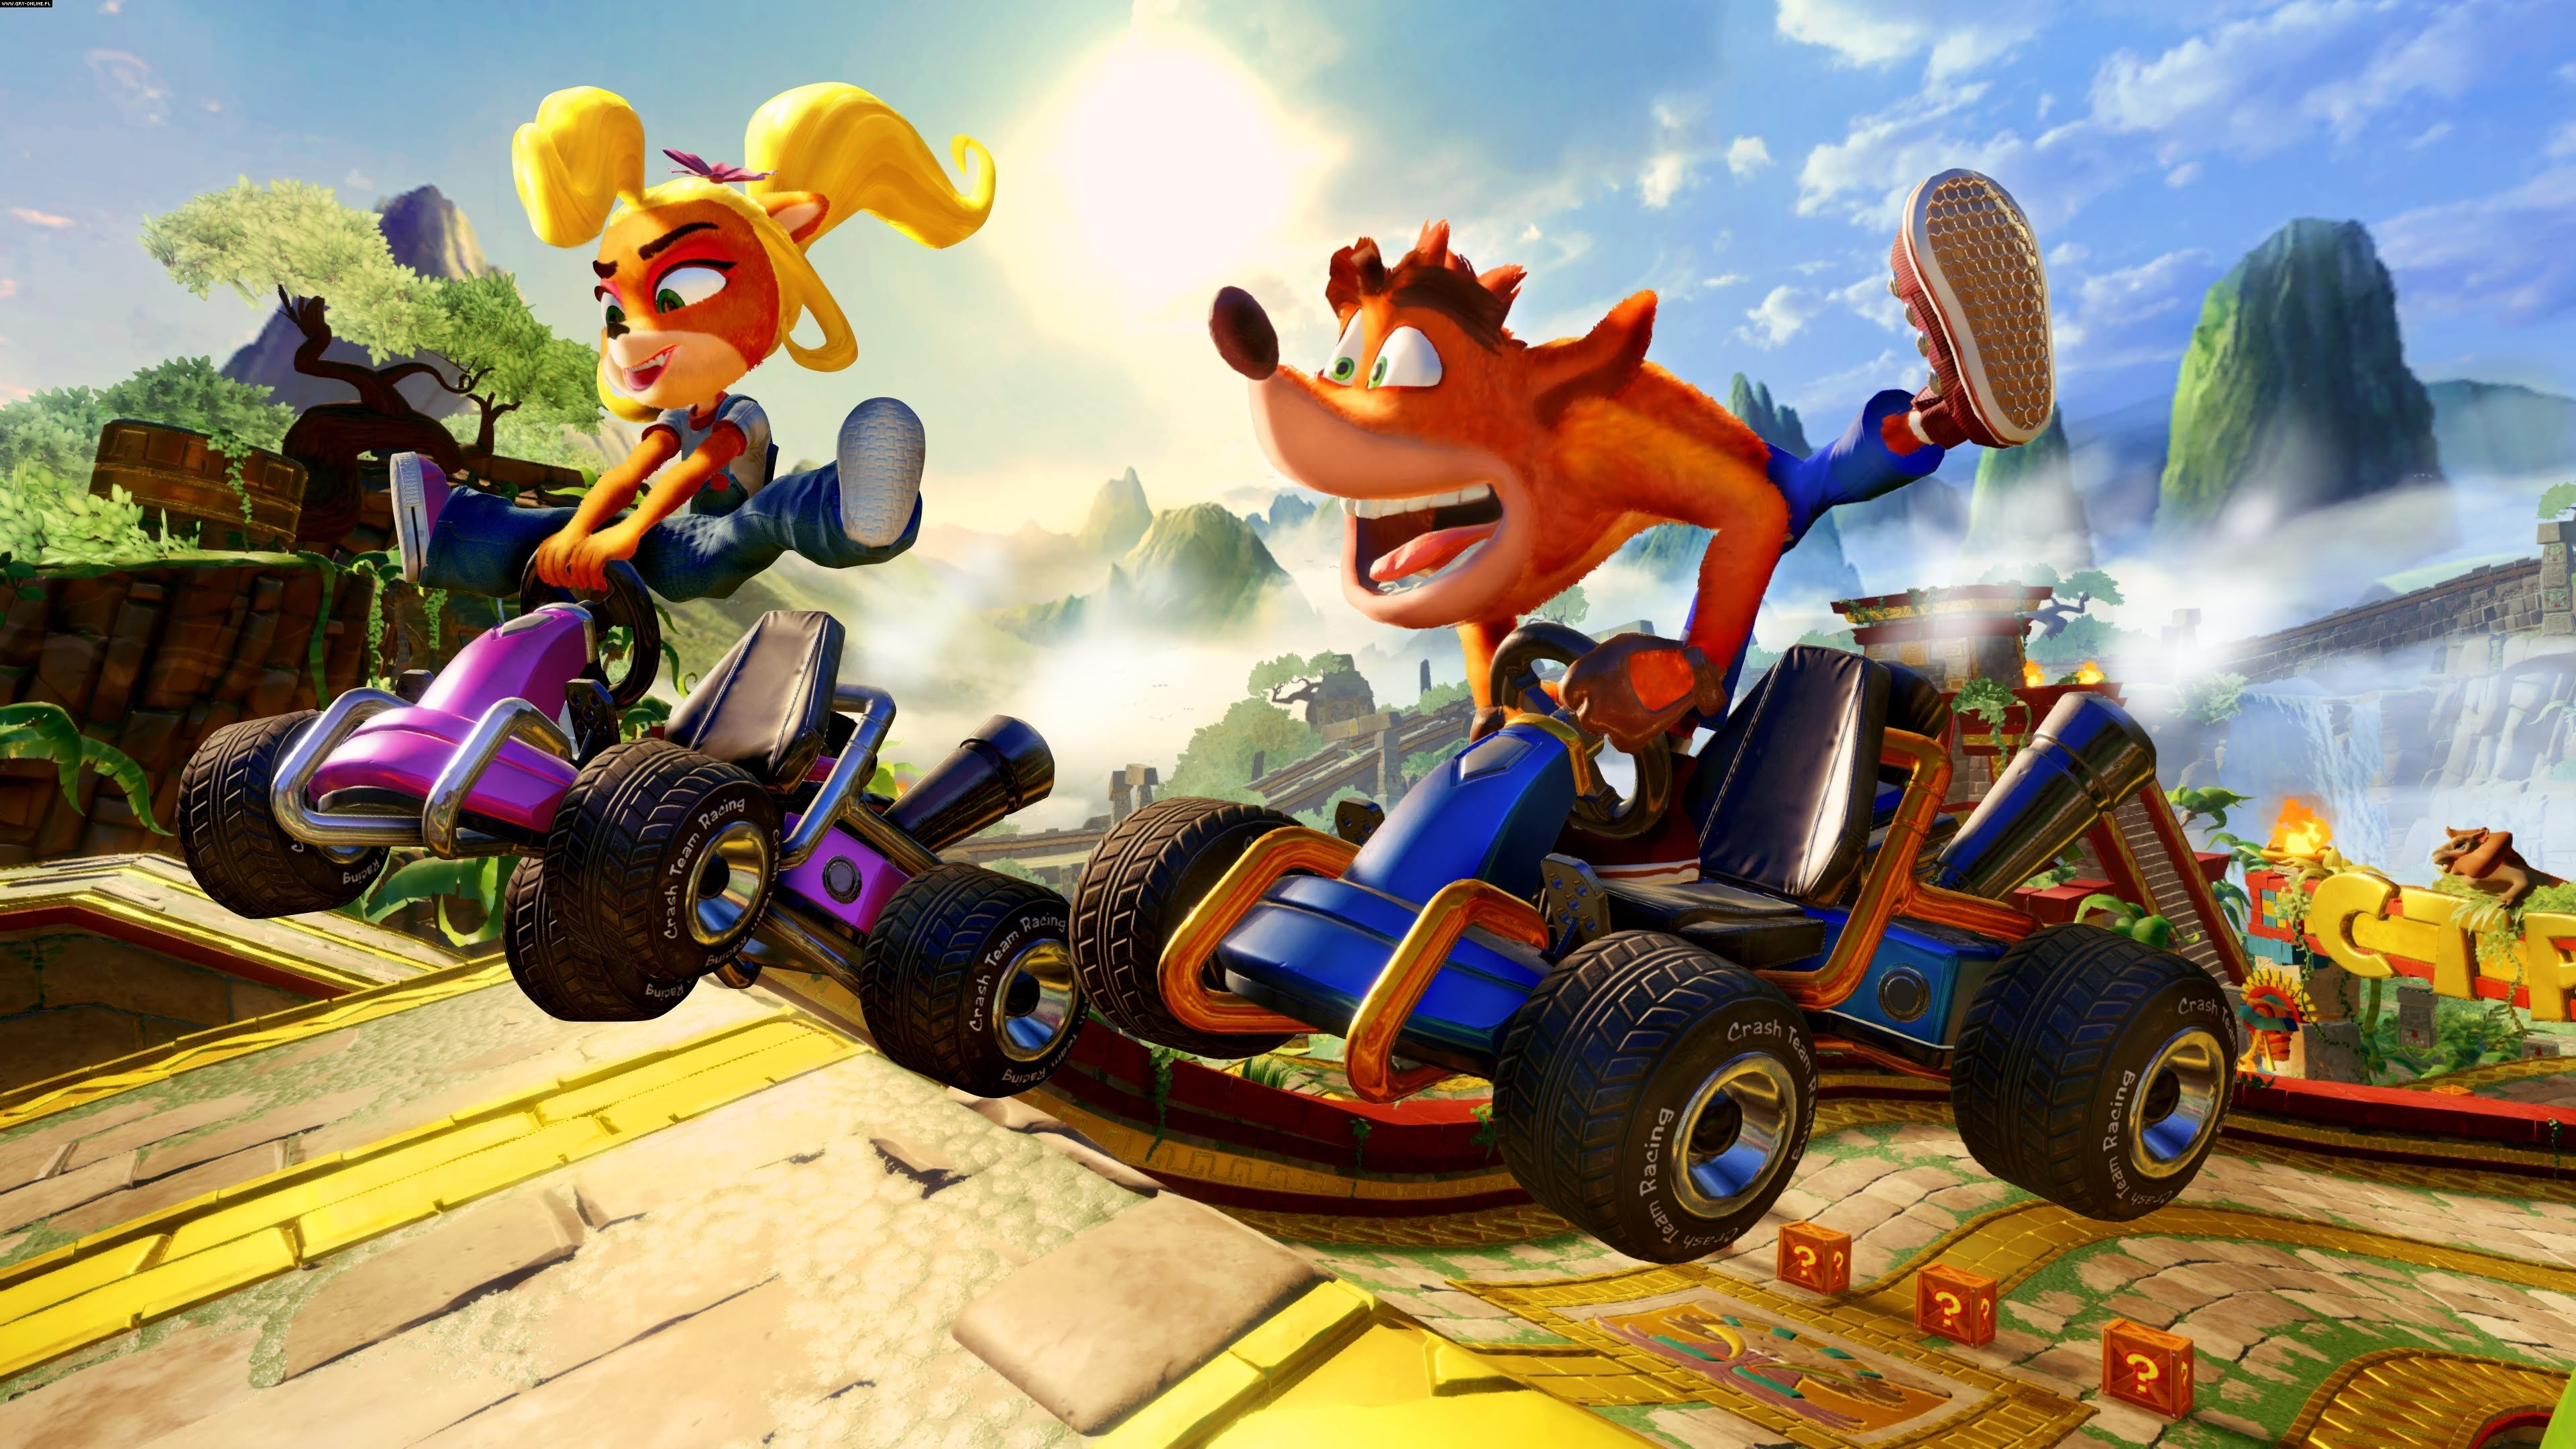 Crash Team Racing Nitro-Fueled PS4 Games Image 9/24, Beenox Inc., Activision Blizzard